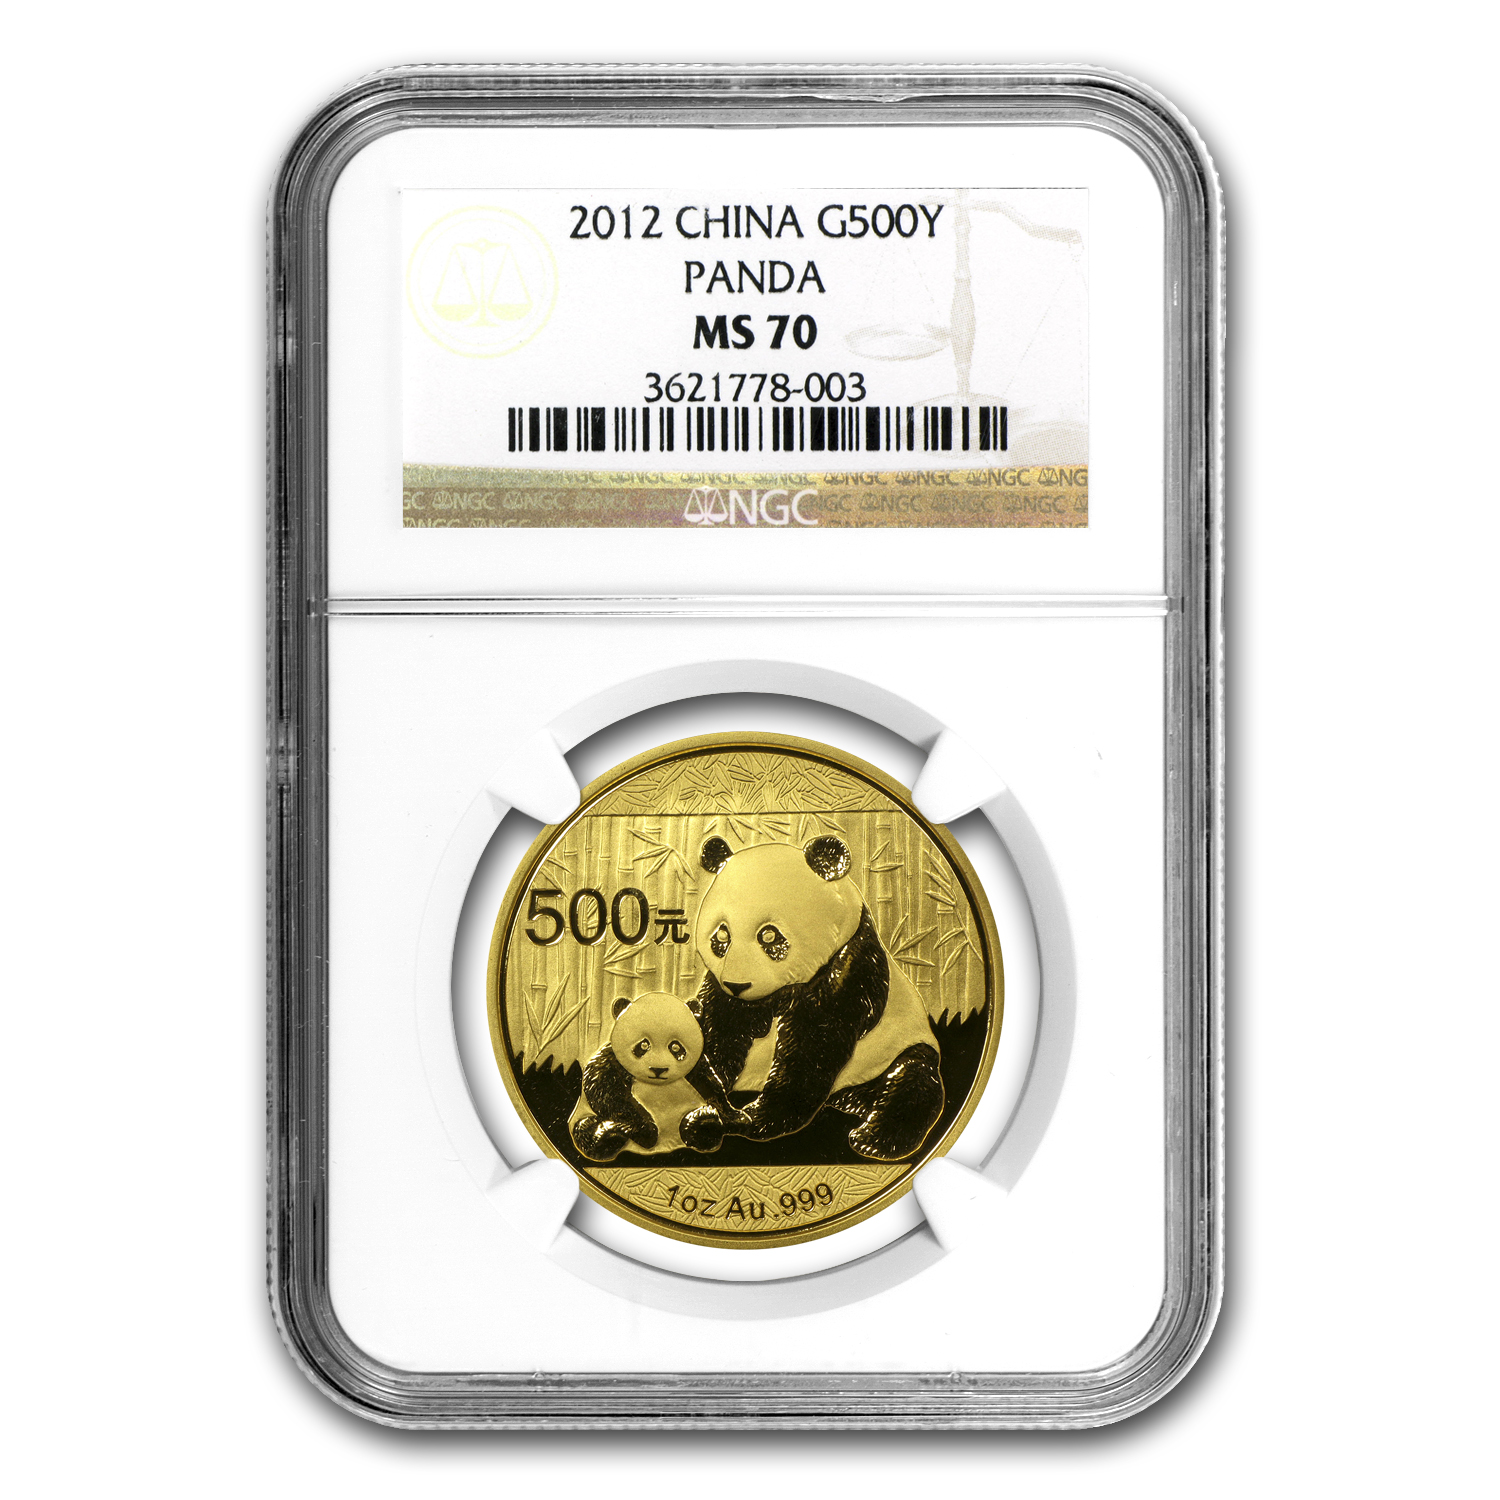 2012 China 1 oz Gold Panda MS-70 NGC